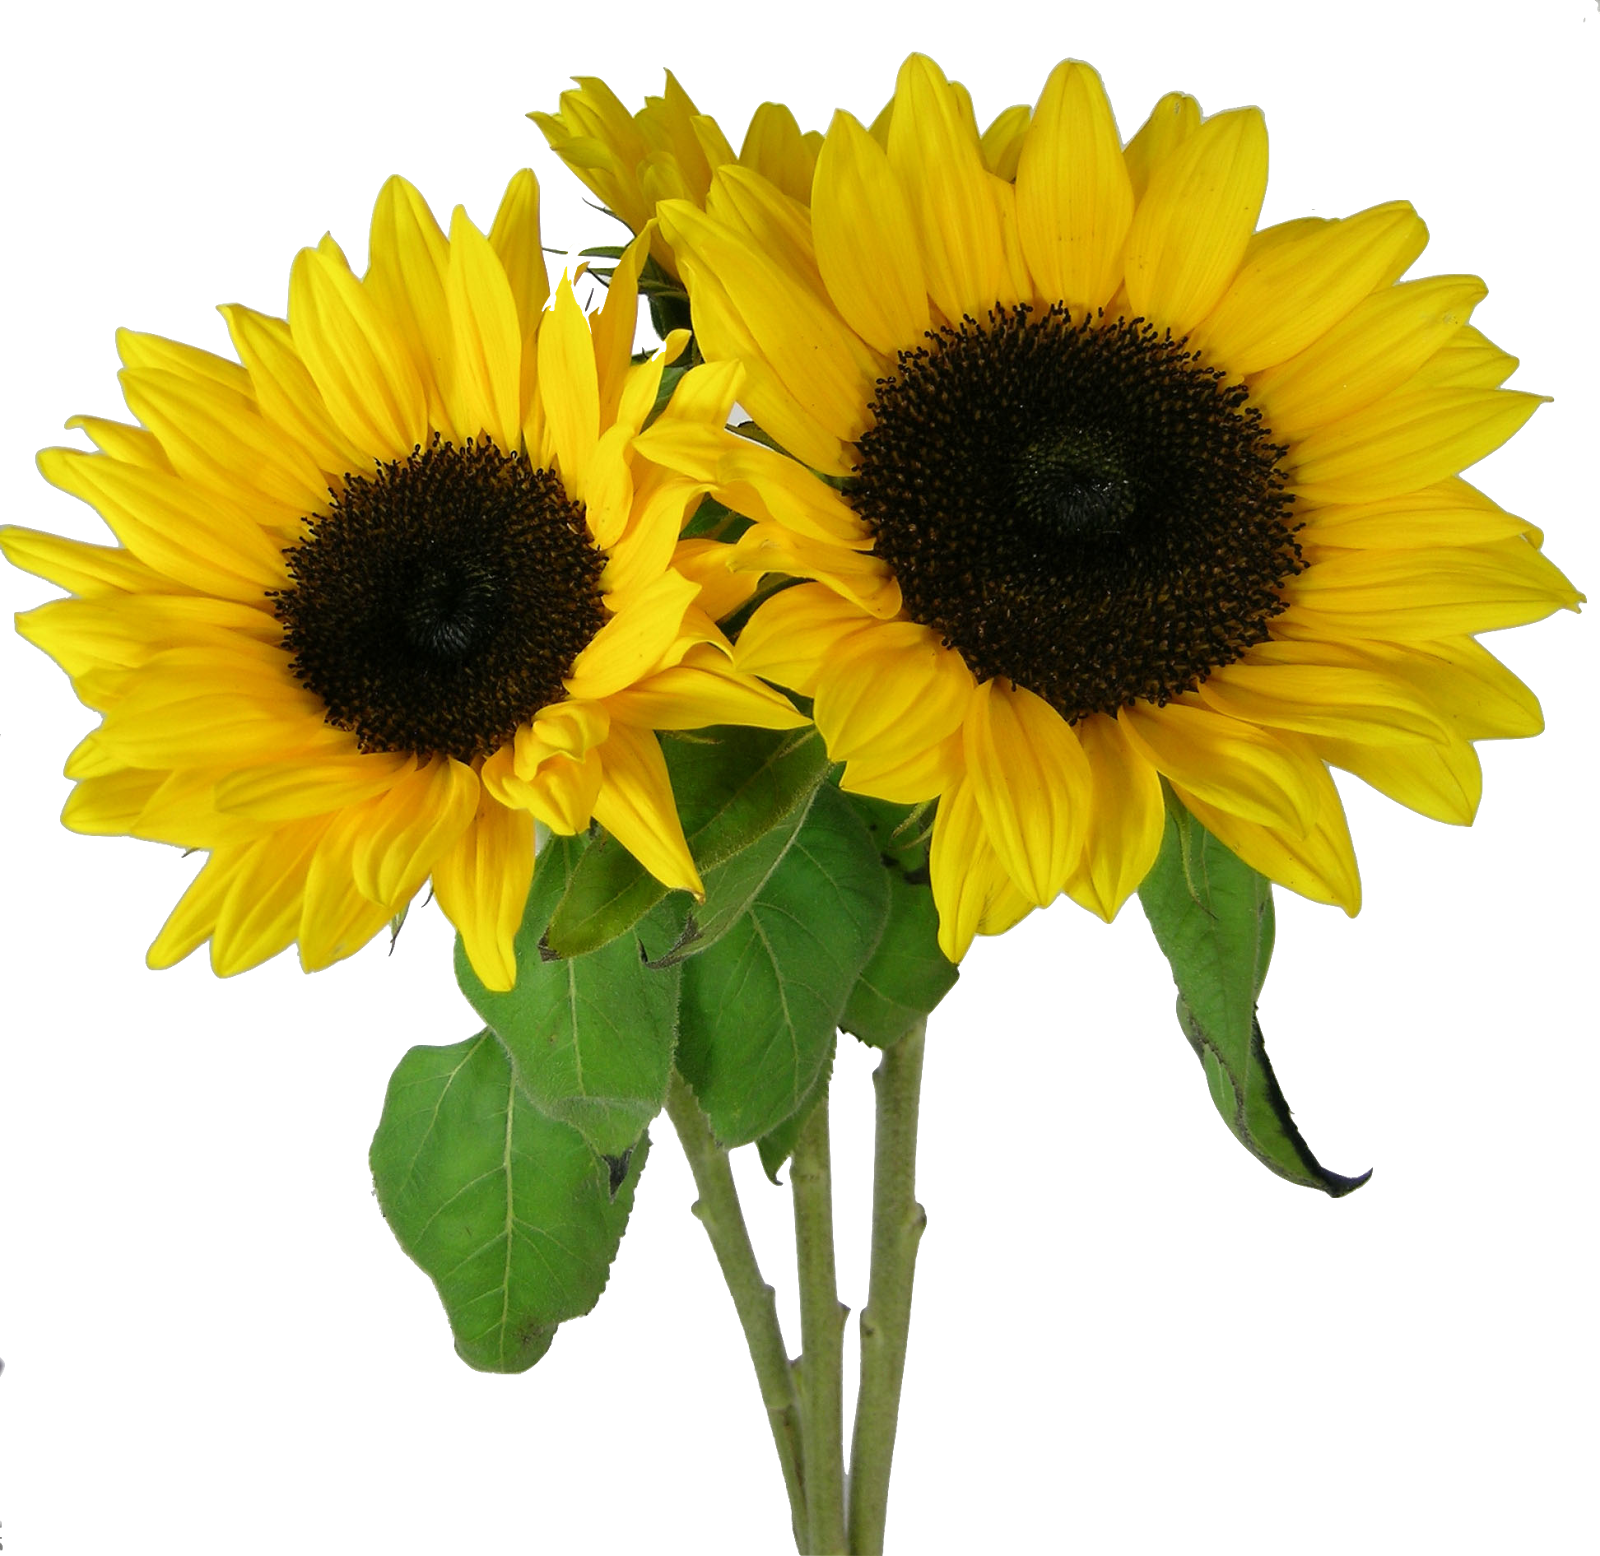 Sunflowers Png image #28717 - Sunflowers PNG